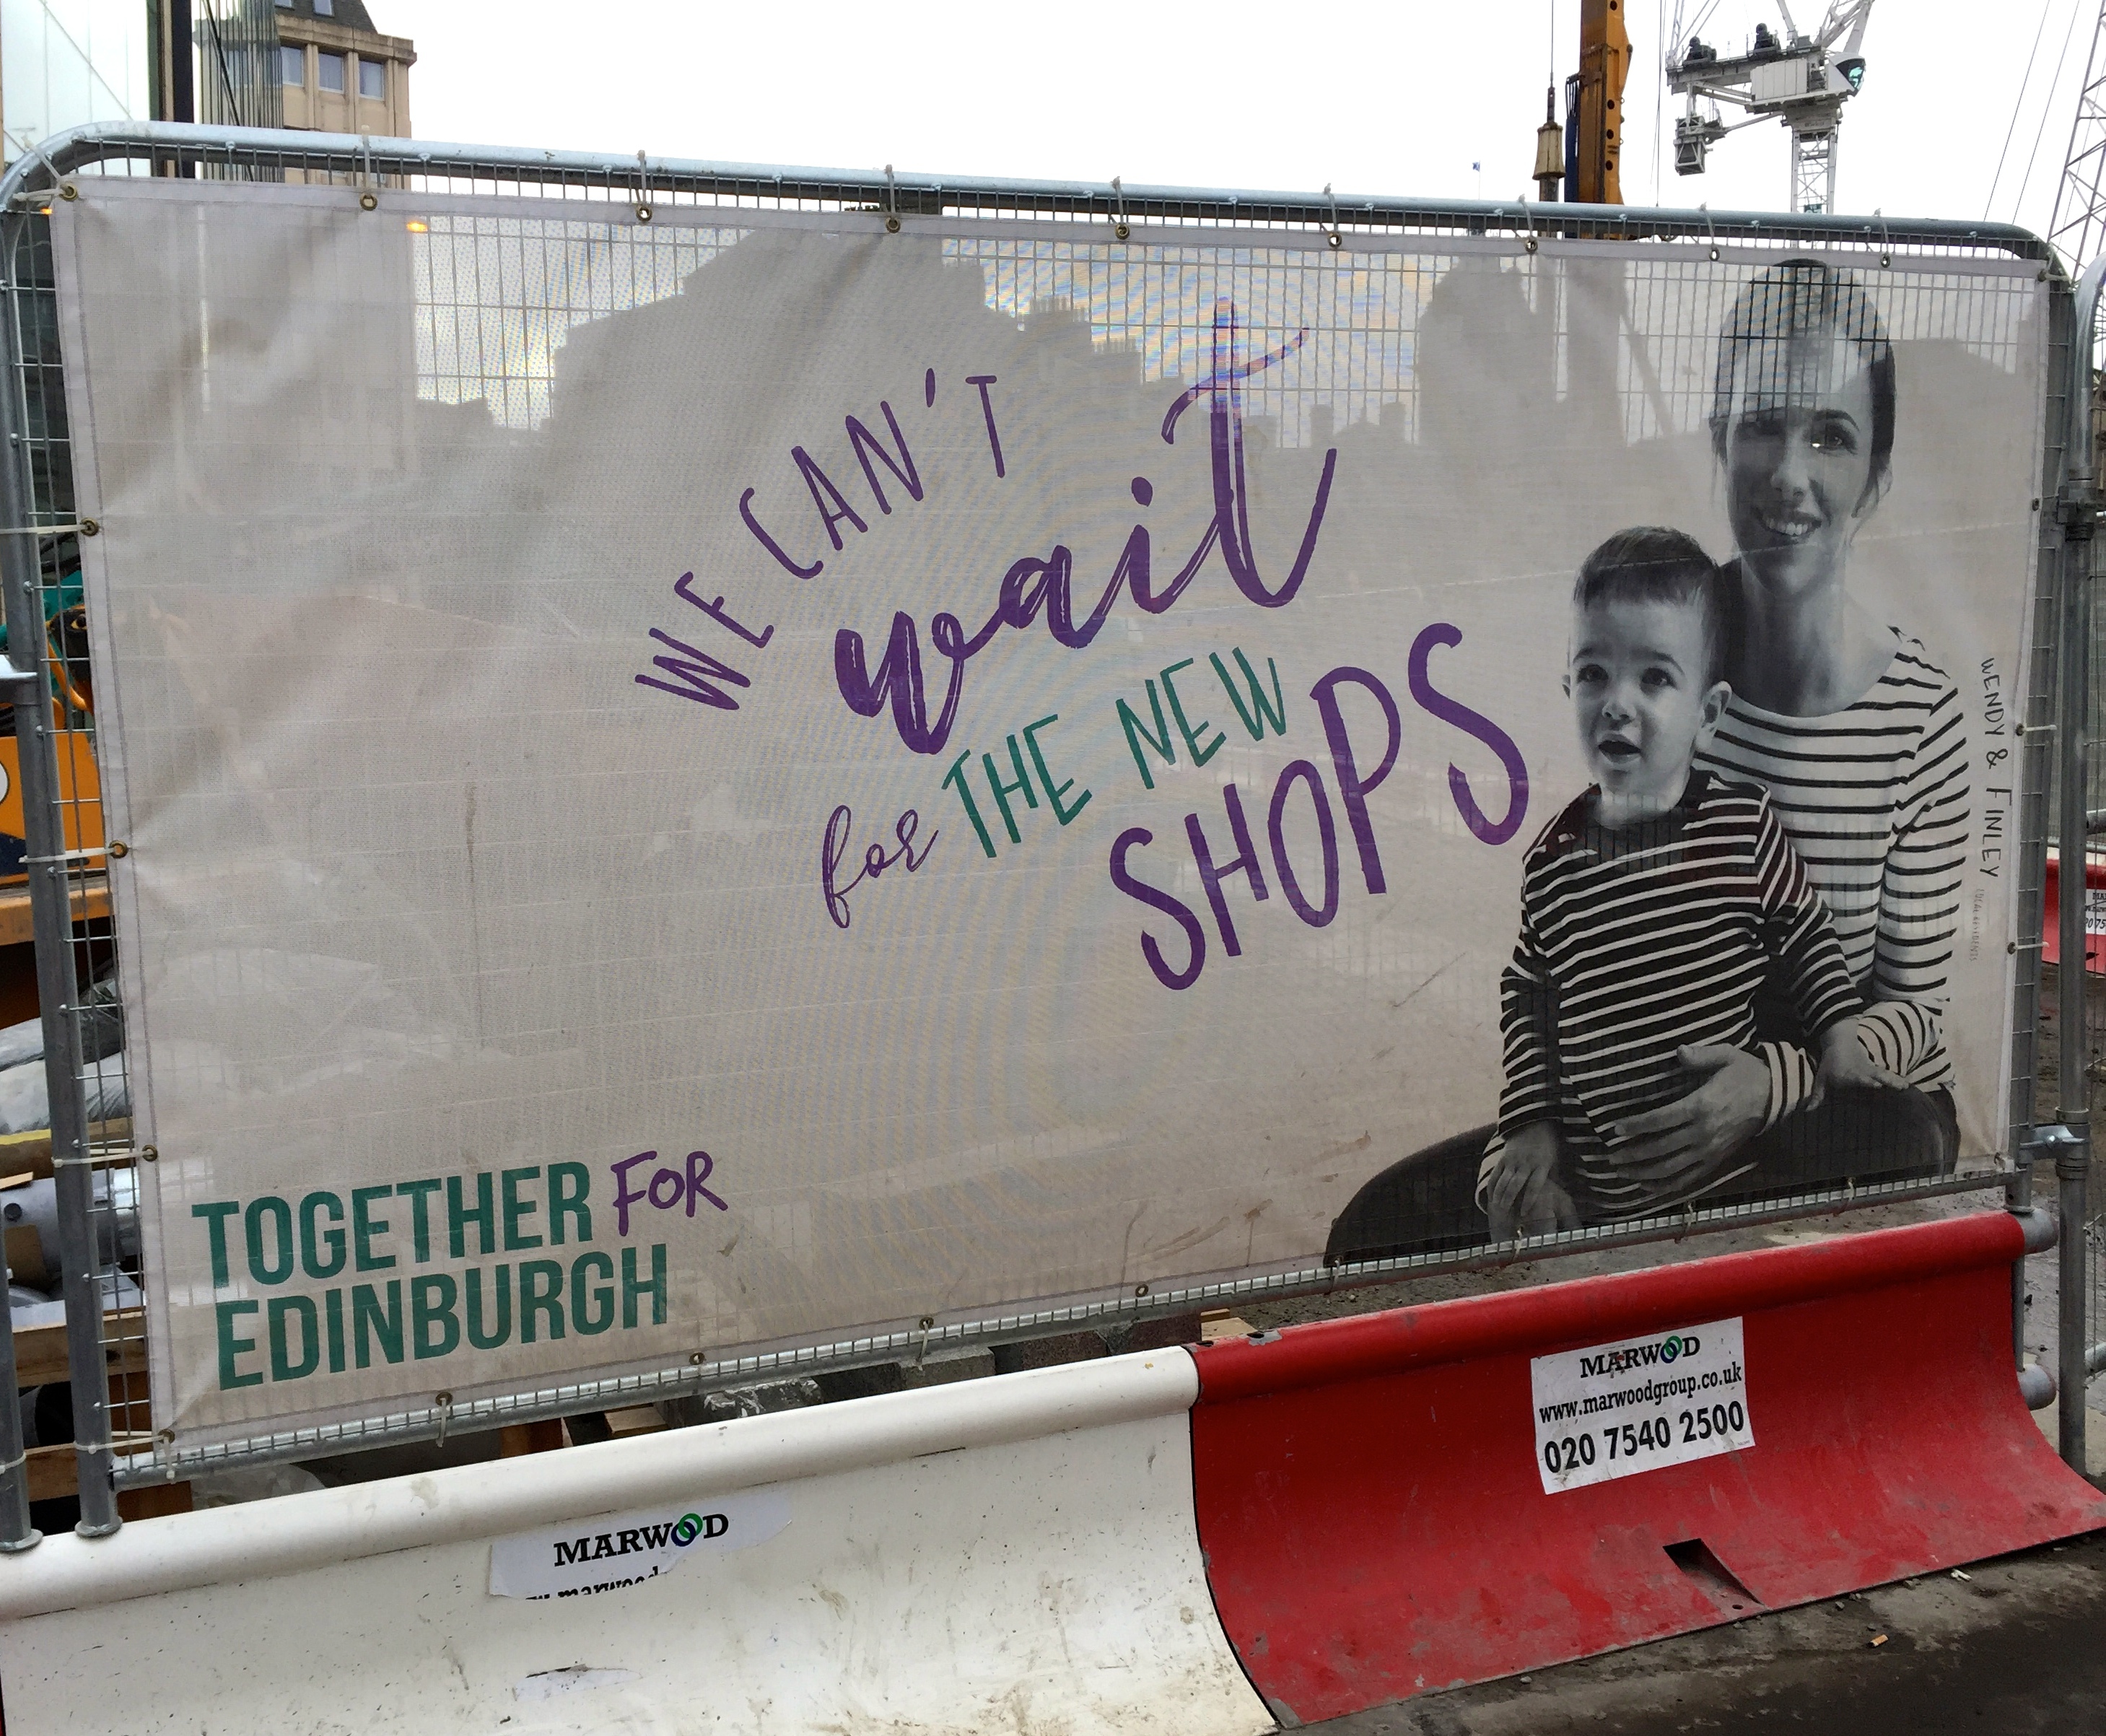 A poster at the construction site of of Edinburgh's East End redevelopment: